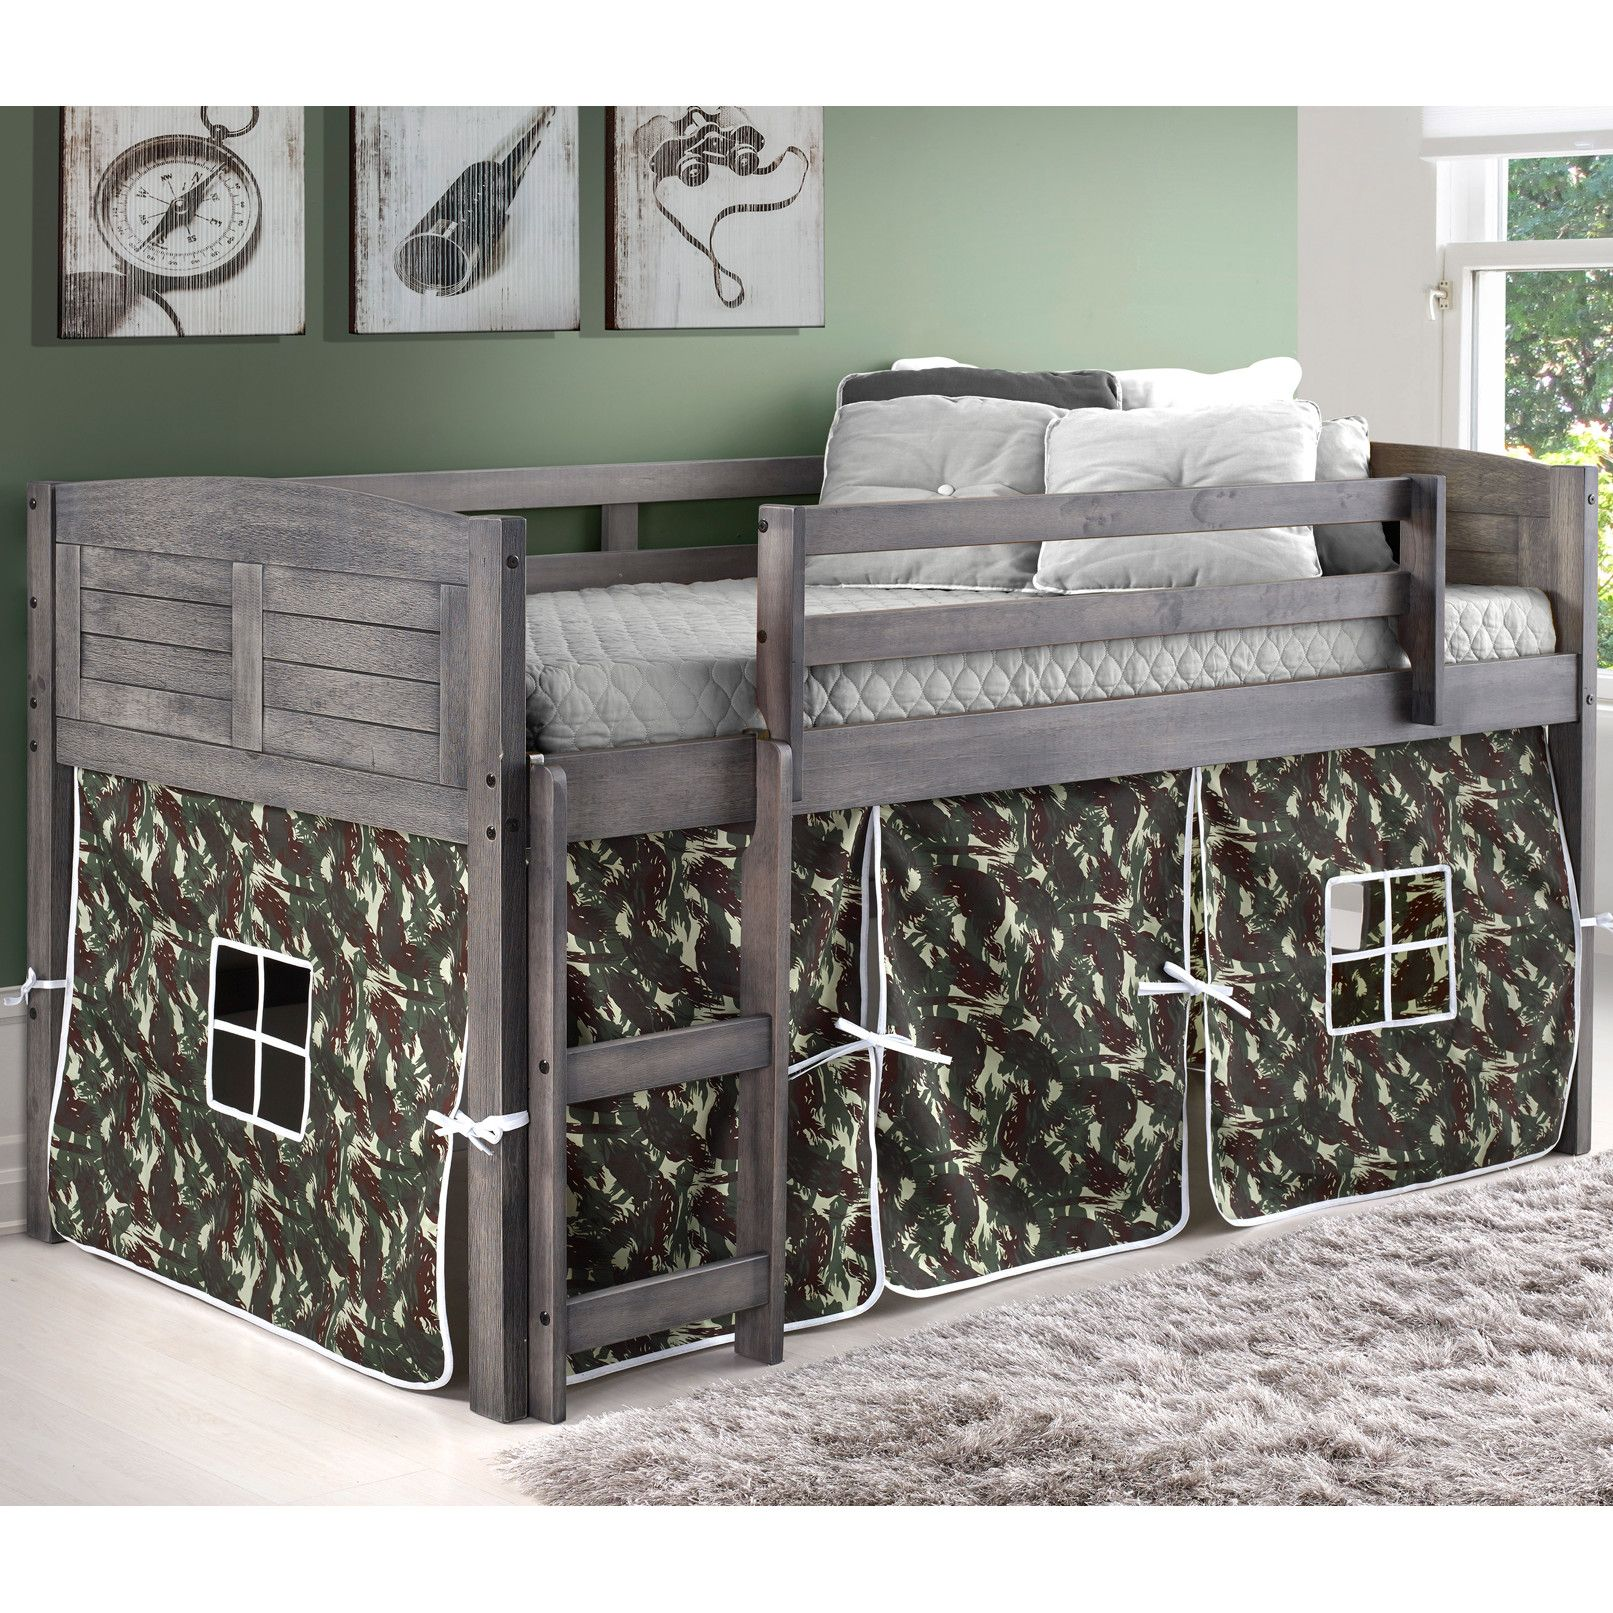 Low loft bed twin  Donco Kids Twin Low Loft Bed  Things for the House  Pinterest